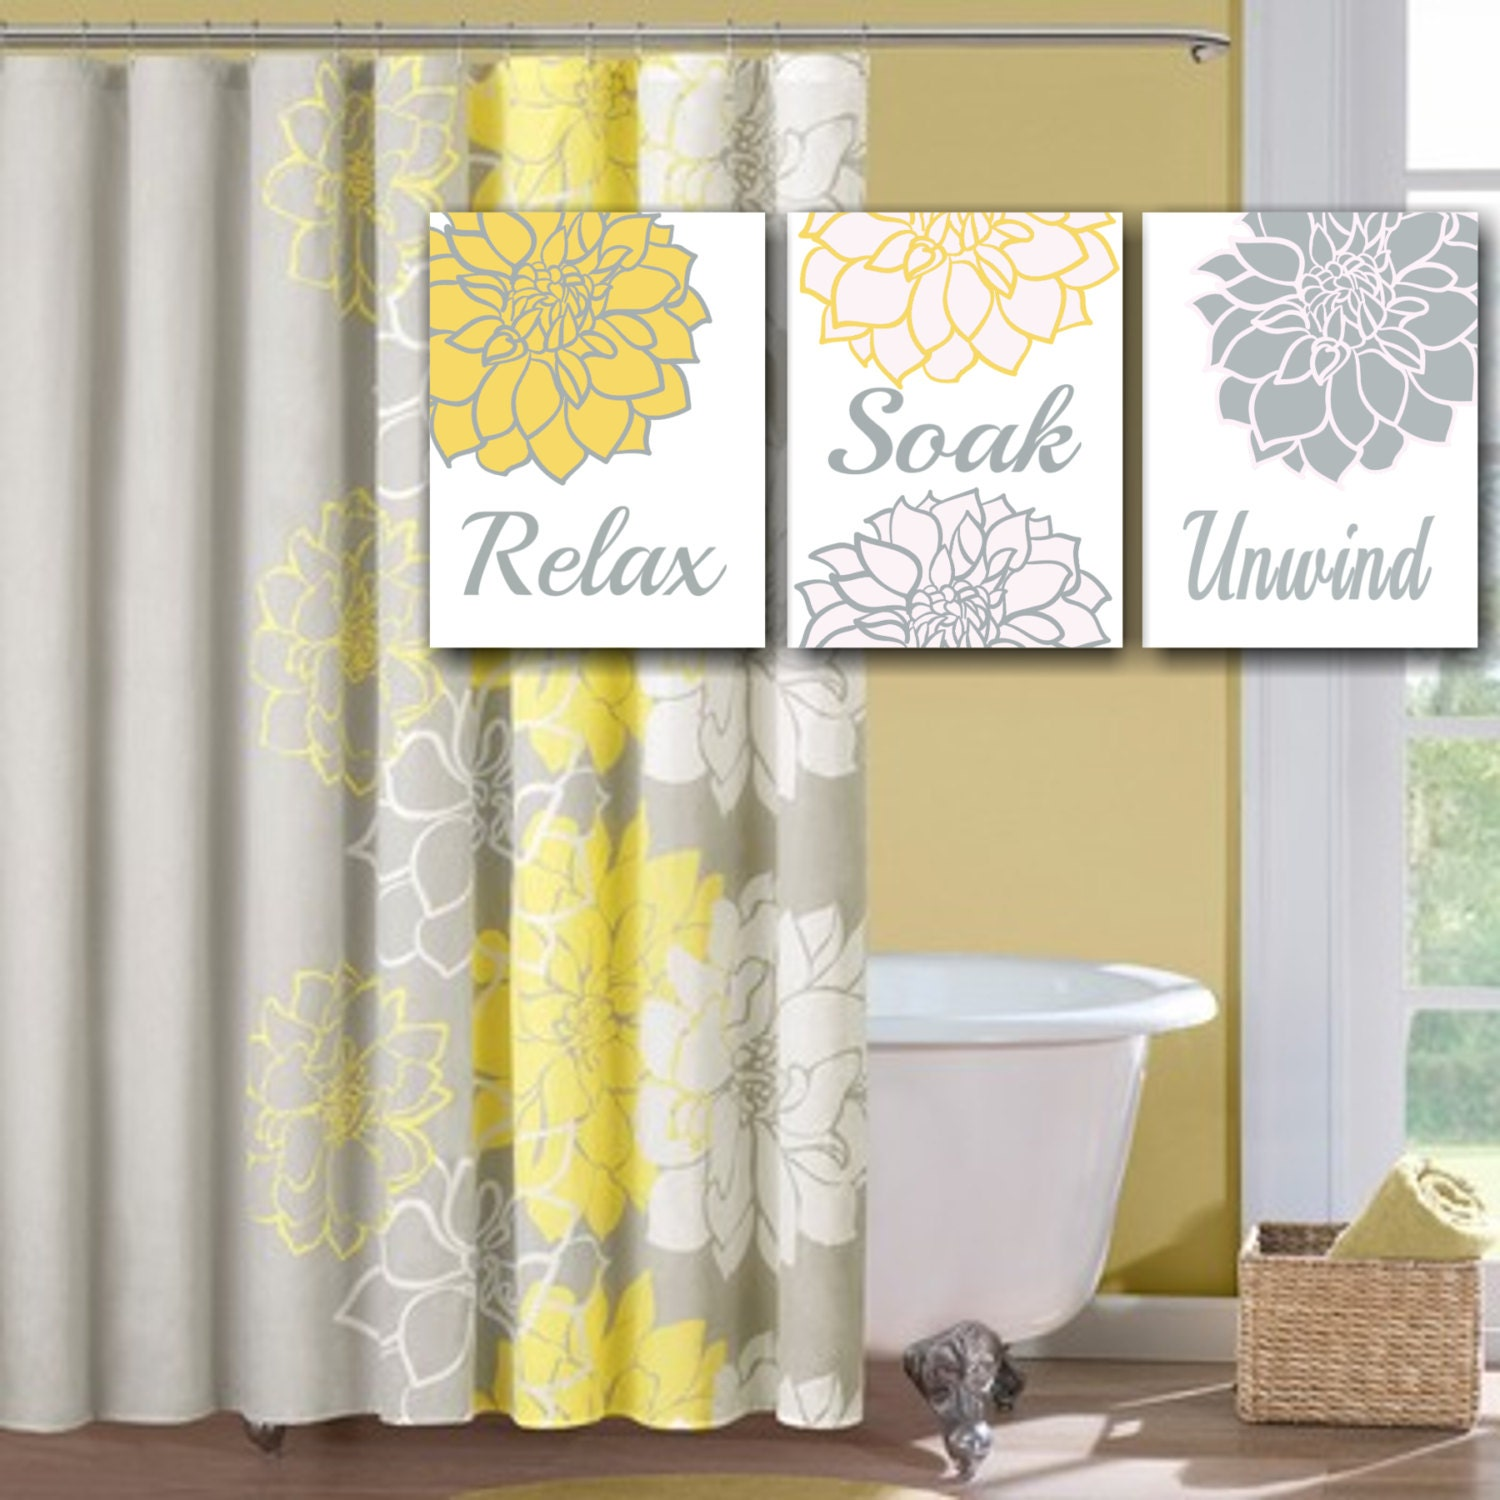 Magnificent Spa Inspired Small Bathrooms Thin Walk In Shower Small Bathroom Clean Grout For Bathroom Tile Repairs Average Price Small Bathroom Young Bathtub Cast Iron Vs Fiberglass RedBathrooms And More Reviews Yellow And Gray Bath Decor   Rukinet